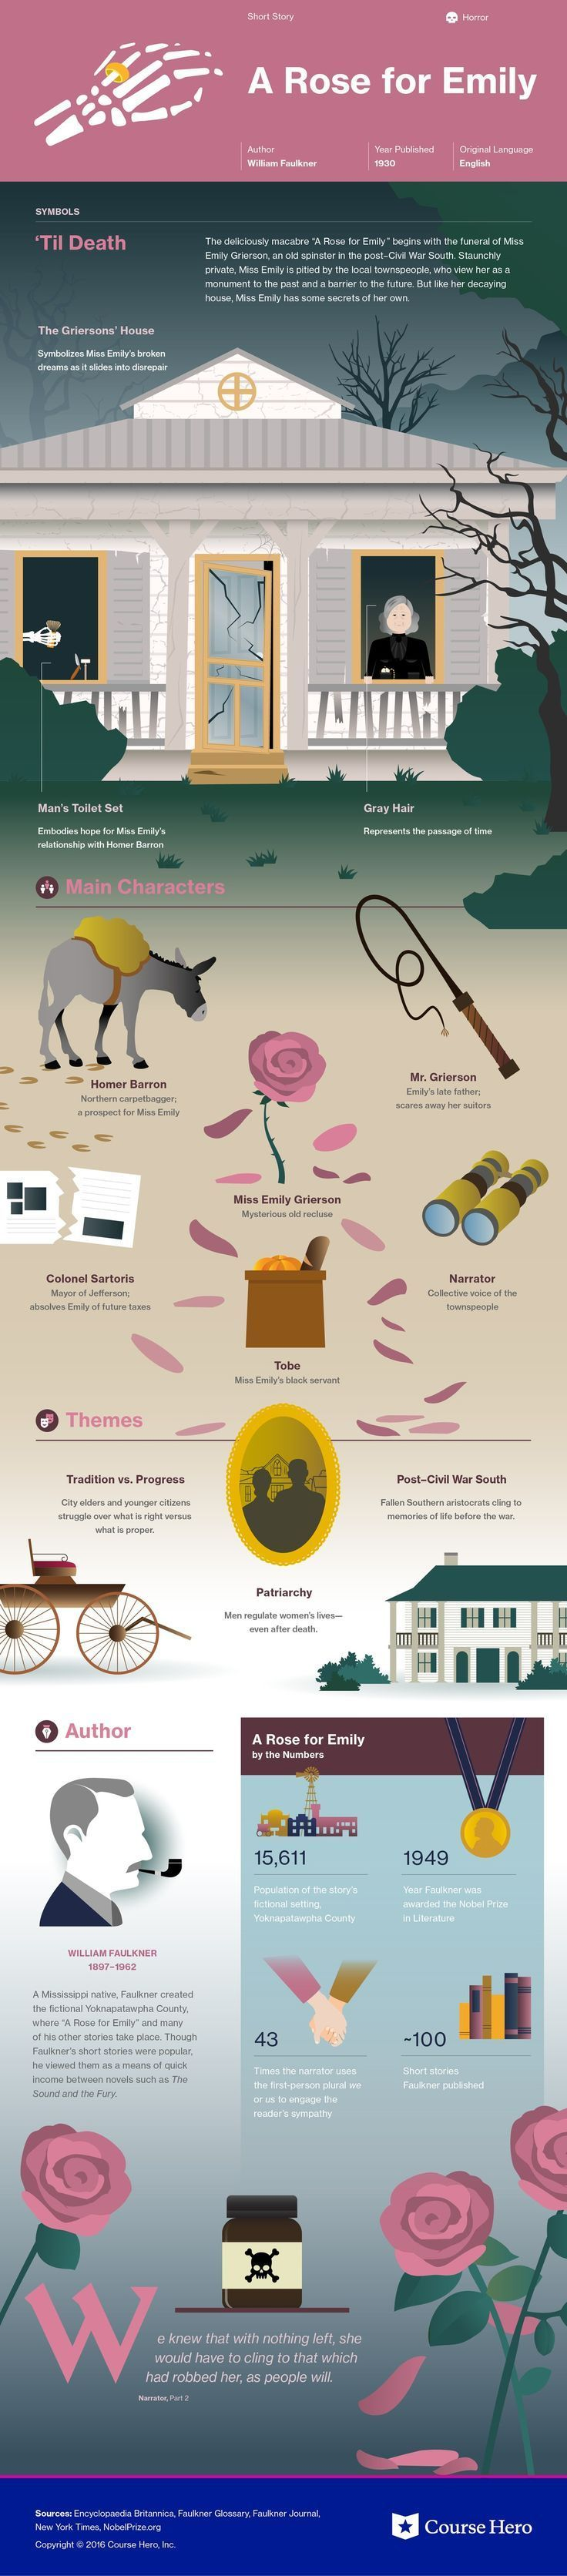 A Rose for Emily Infographic | Course Hero